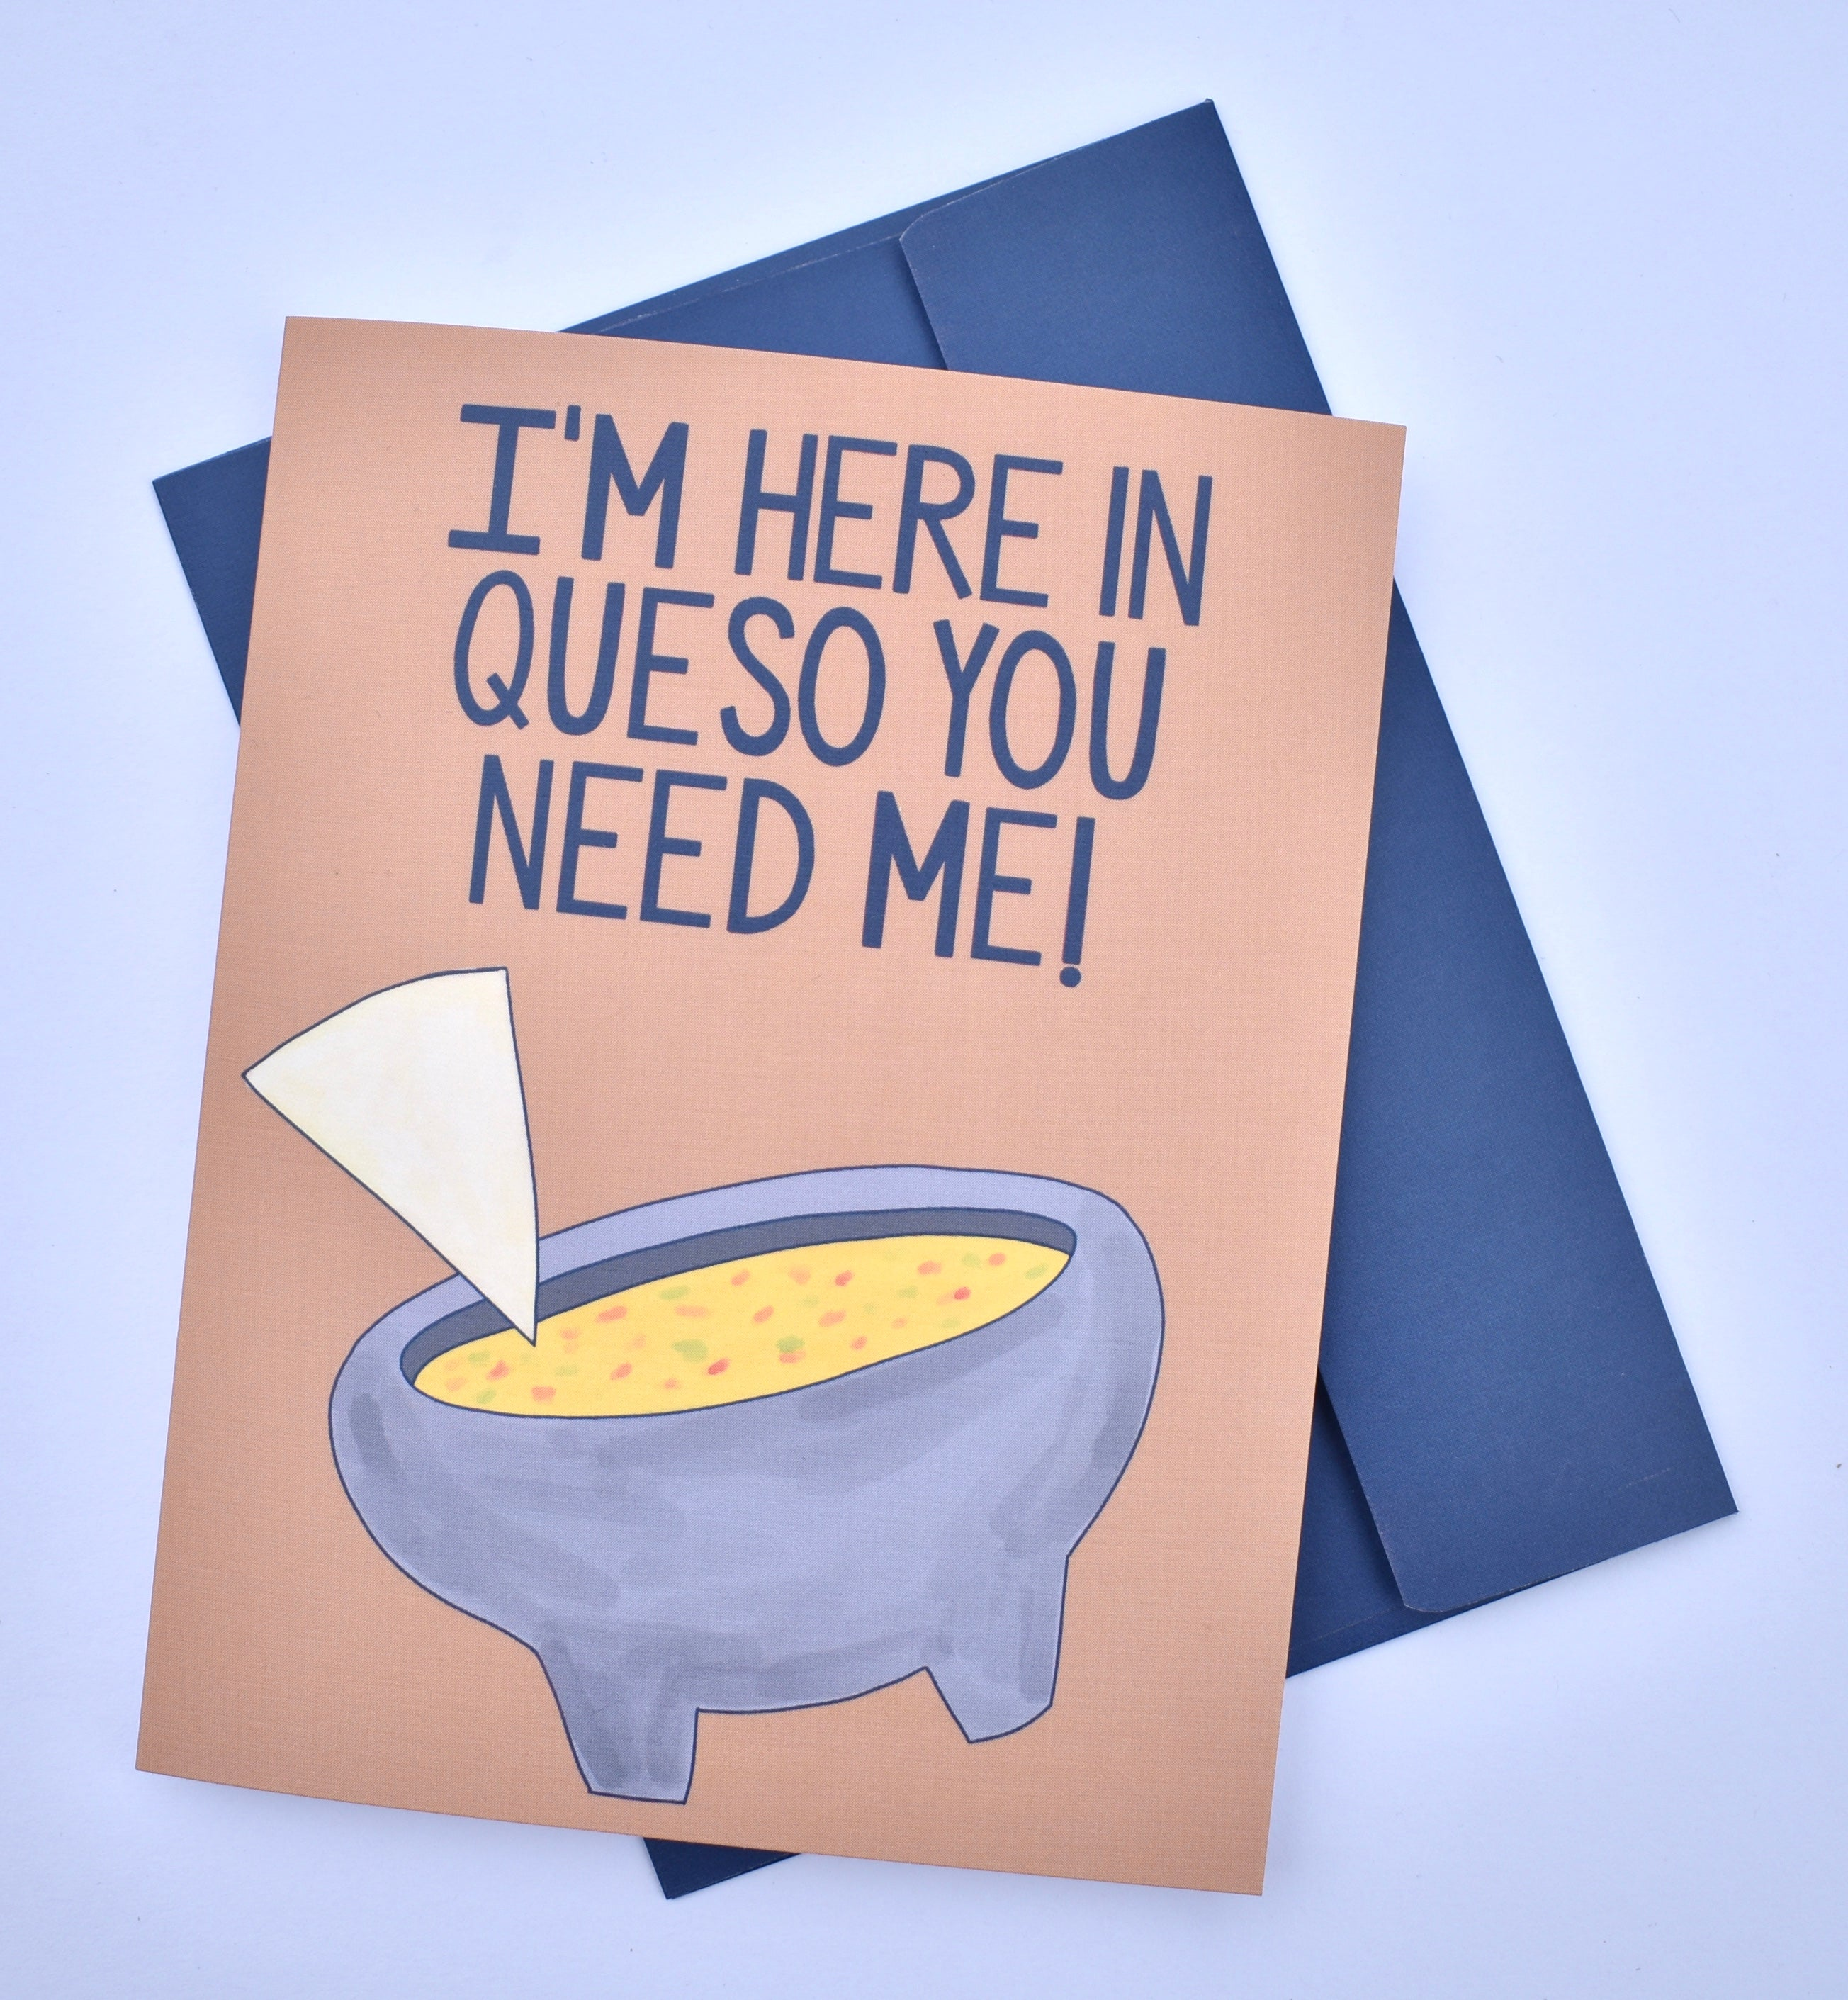 I'm Here in Queso You Need Me